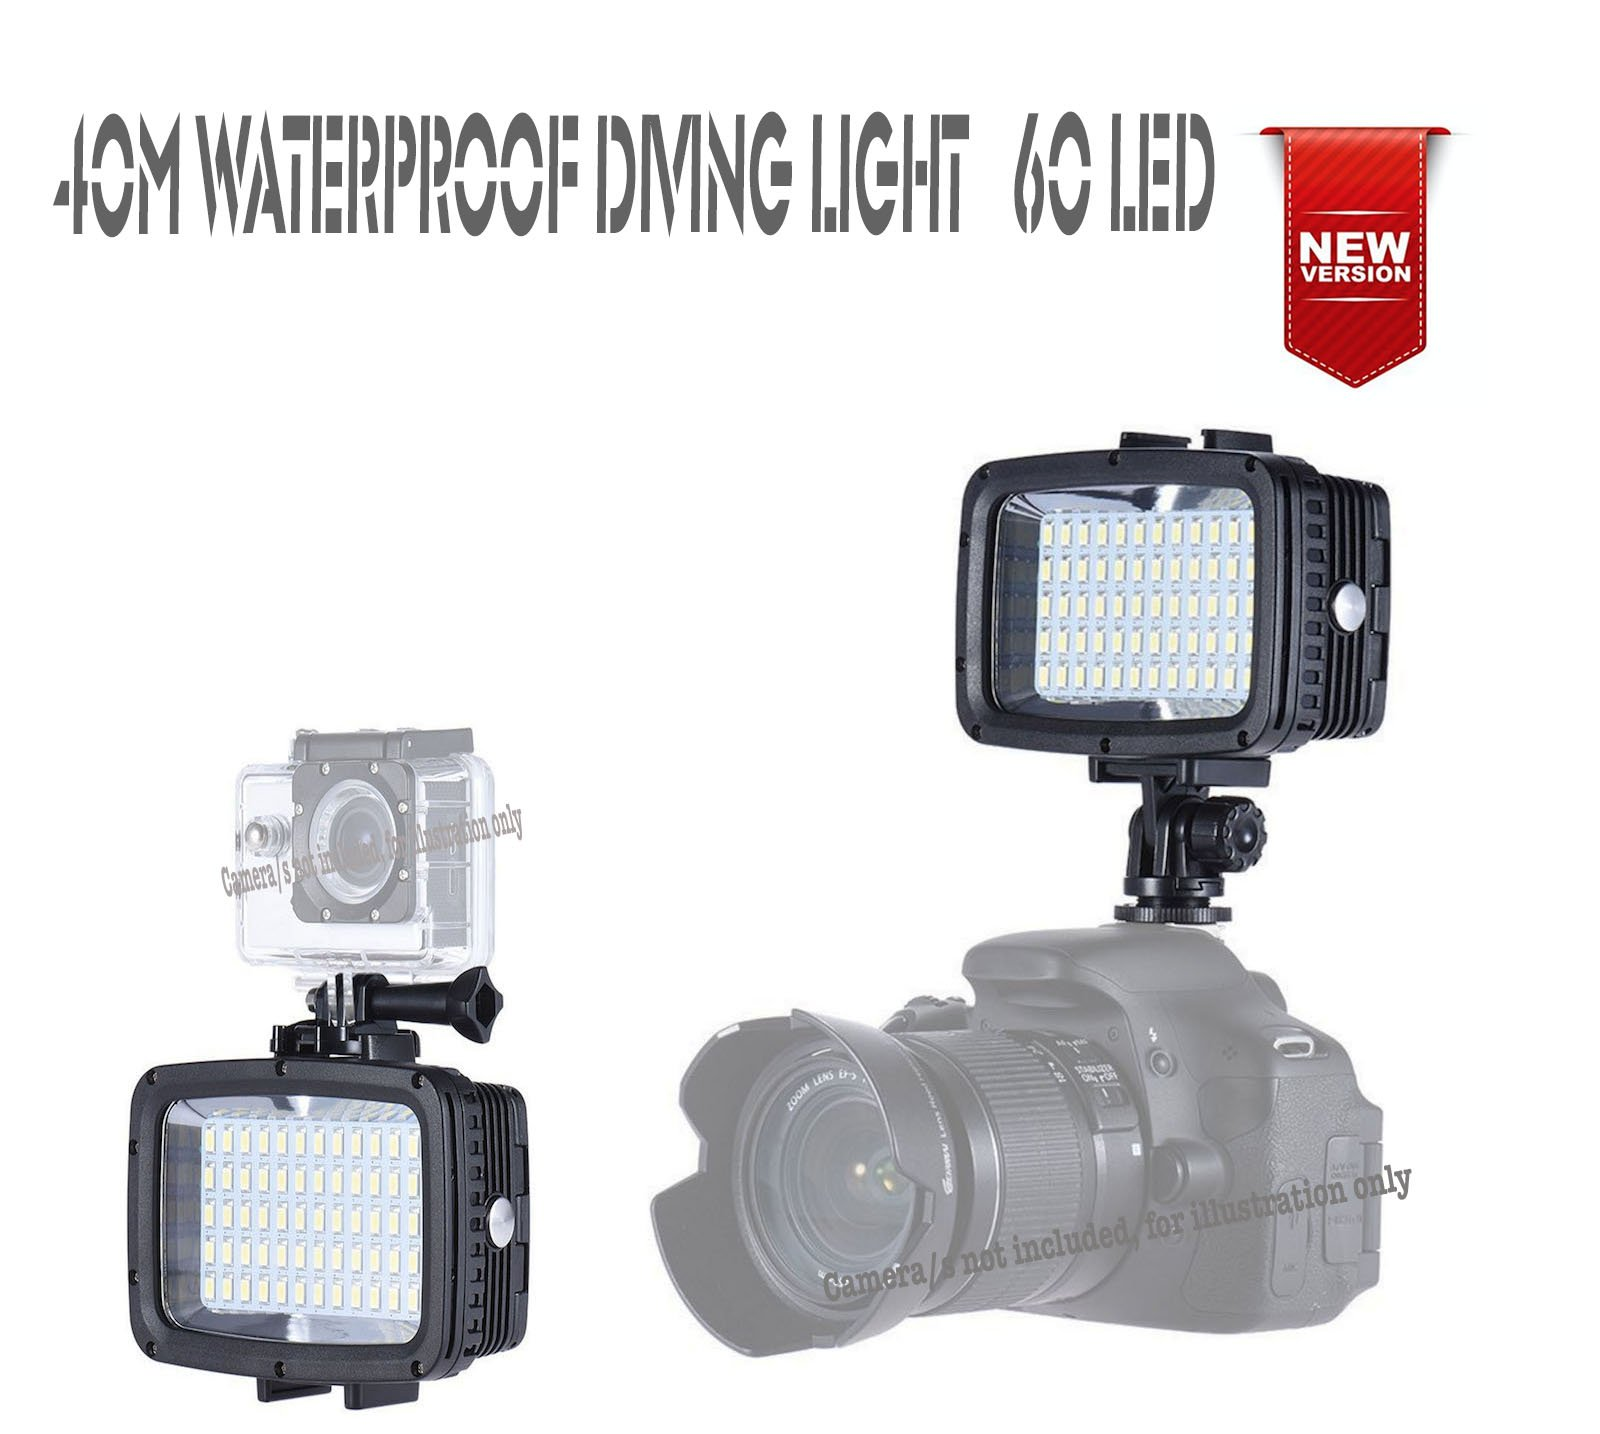 Casewarehouse Waterproof LED Video Light 40m Diving Fill-in Light Ultra Bright 1800Lm 60-LED 5500K 12W 3-Modes w/2x18650 Battery Studio Lamp for GoPro Action Camera Sony Canon DSLR Cameras (60LED)